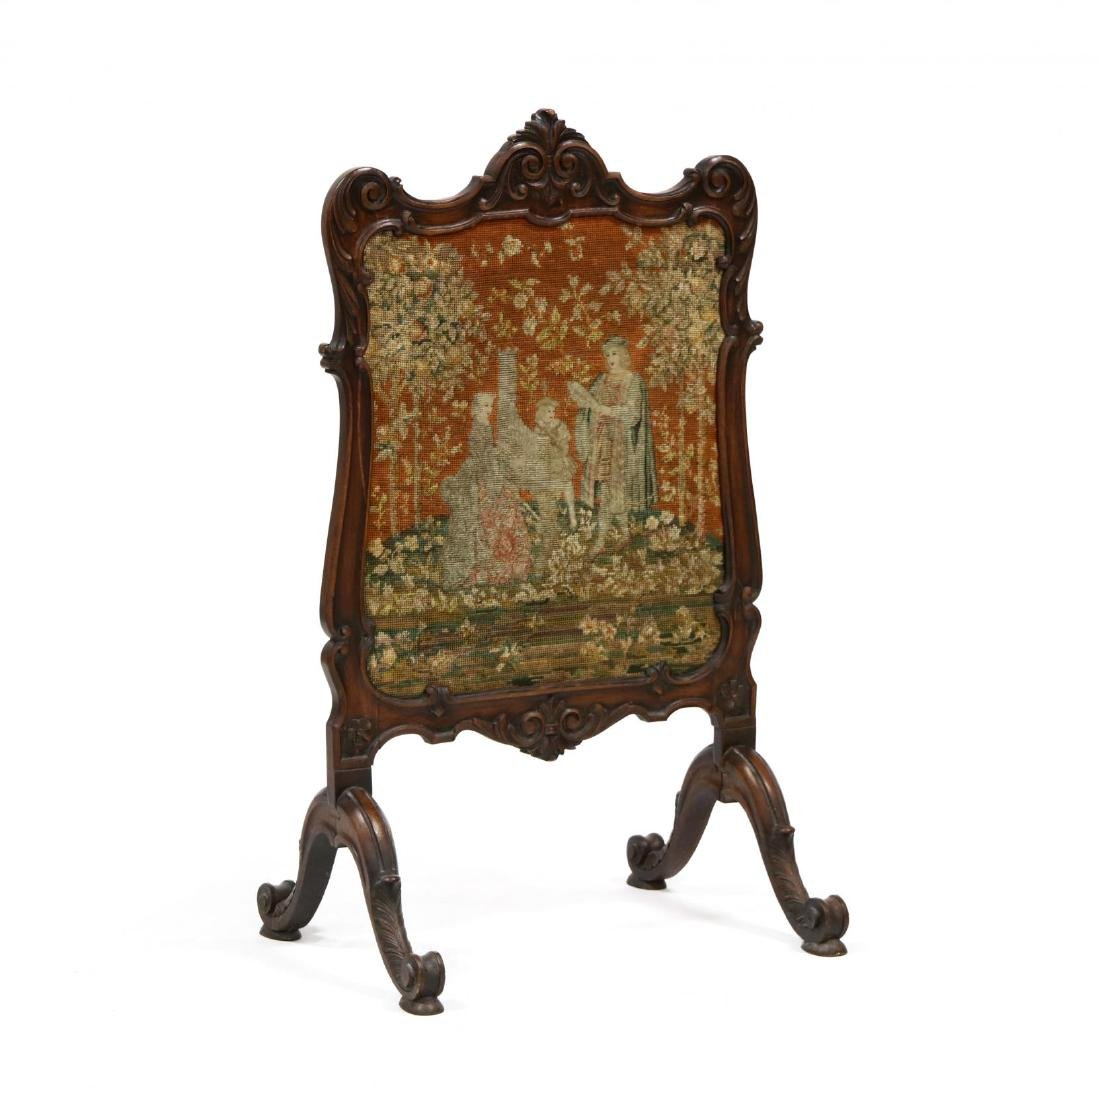 Rococo Revival Carved Walnut Fire Screen